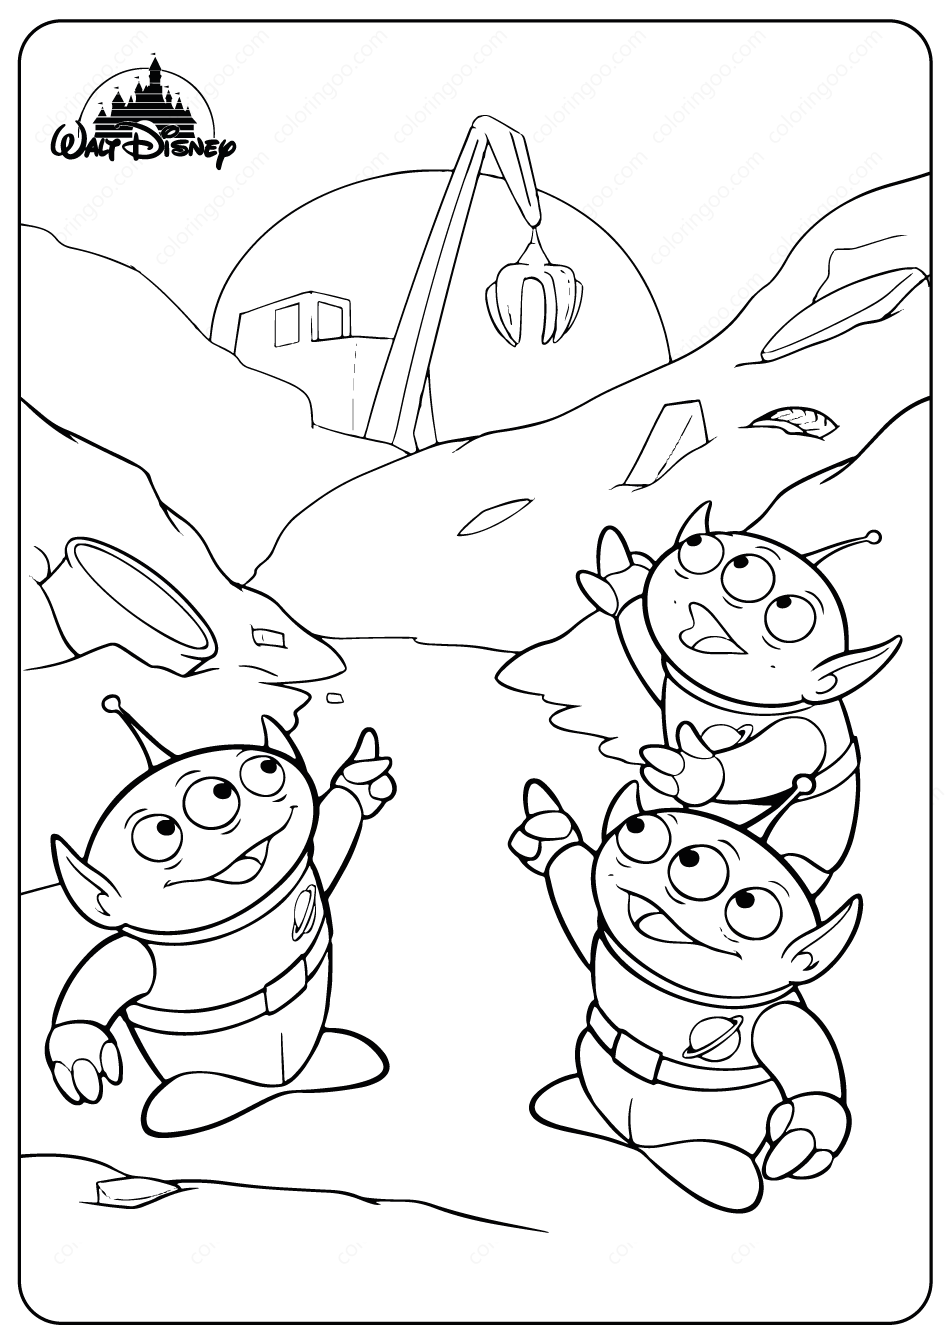 Toy Story Aliens Coloring Pages #disney #aliens #toystory ...